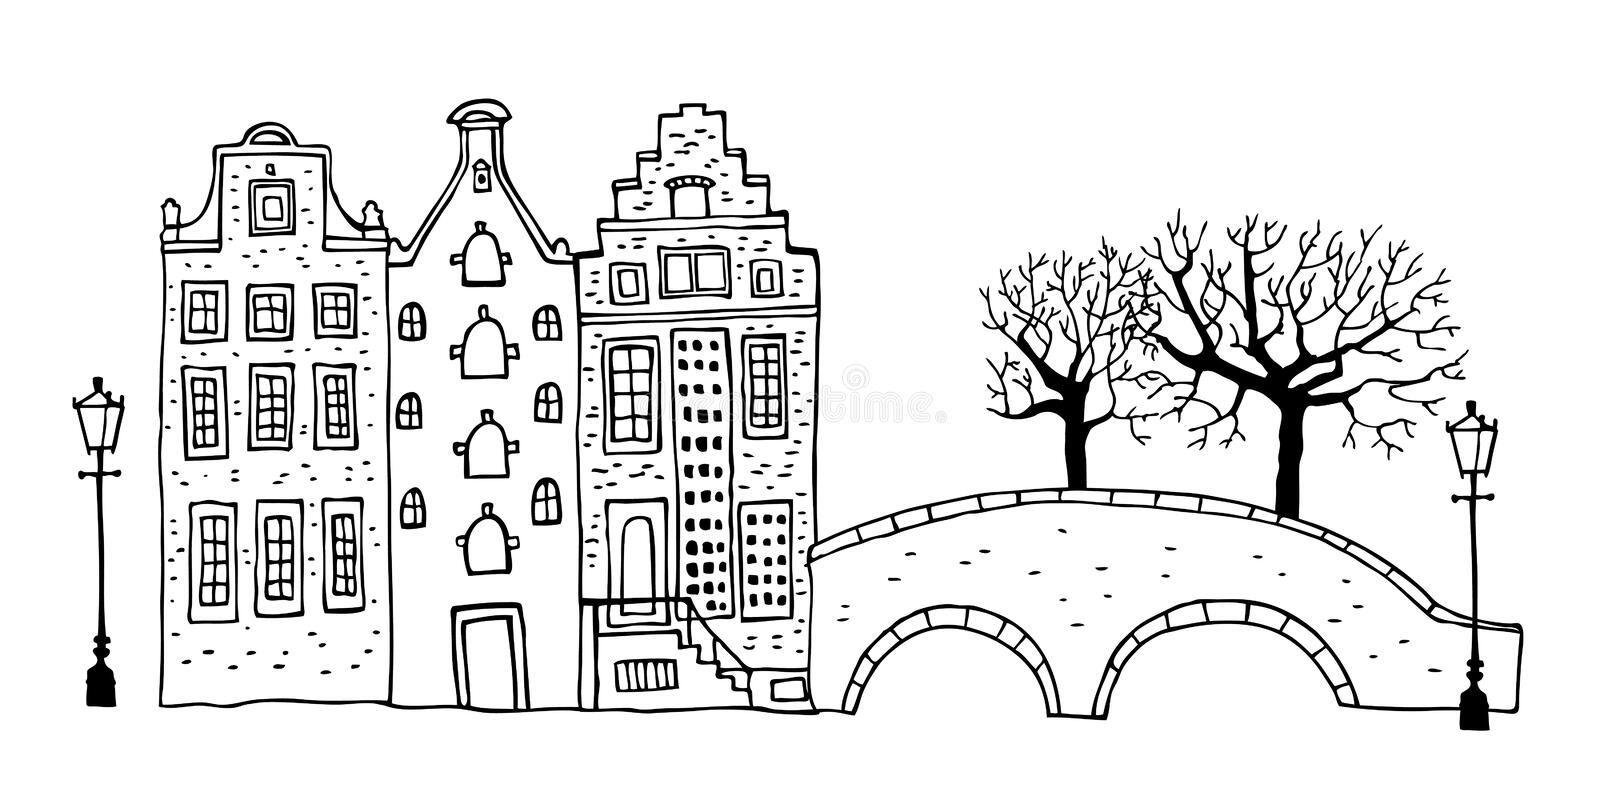 Amsterdam street scene. Vector outline sketch hand drawn illustration. Three houses with bridge, lantern, trees royalty free illustration